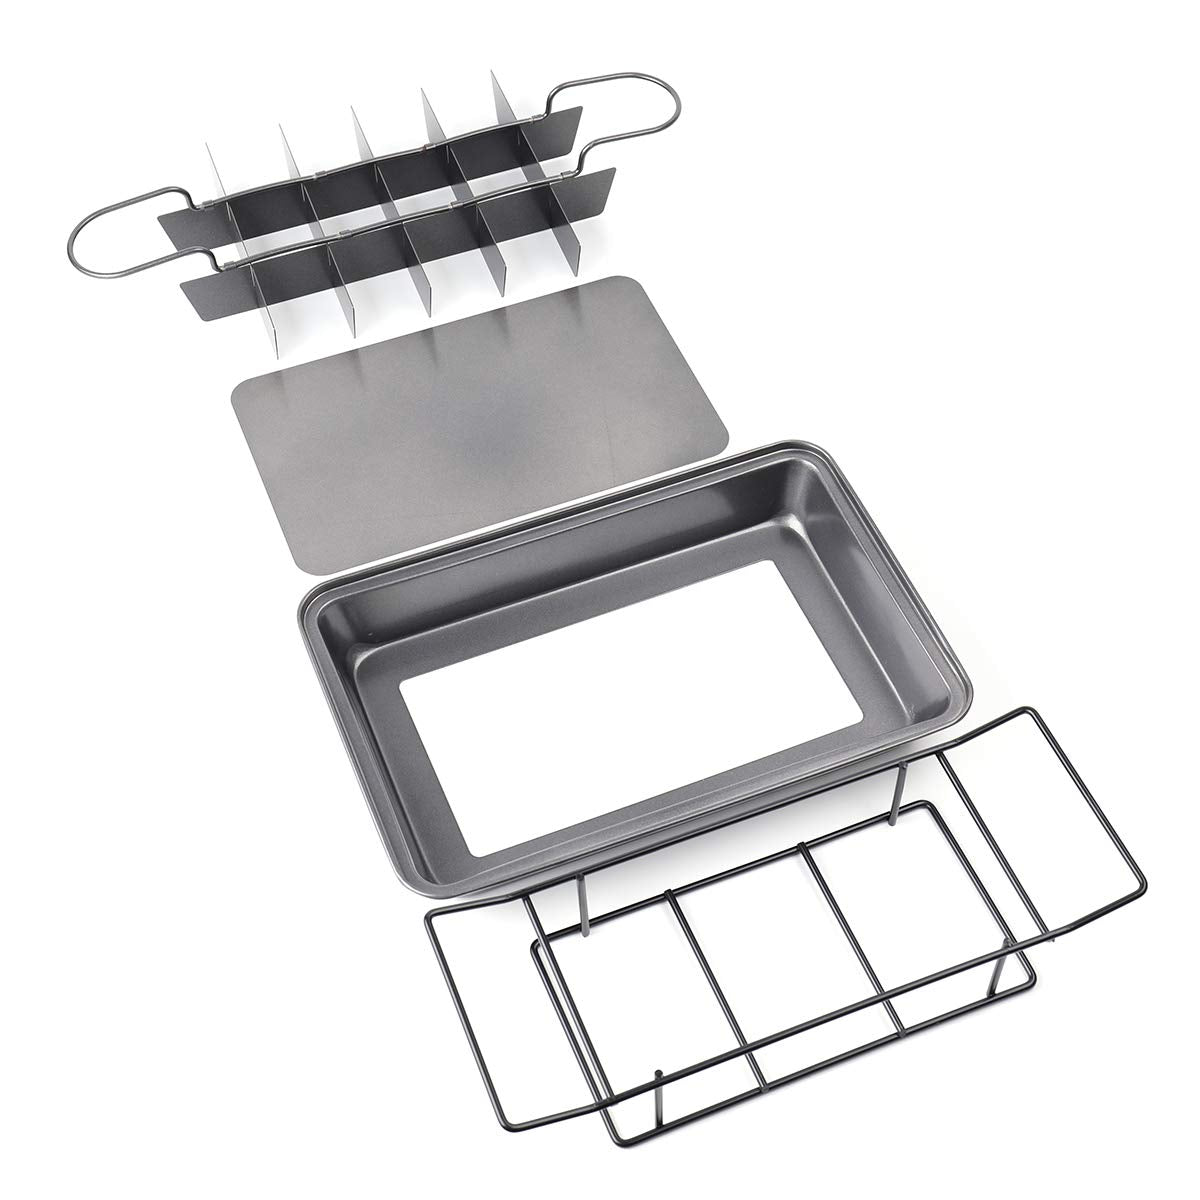 Kingrol Nonstick Brownie Pan, Baking Pan with Built-In Slicer & Rack